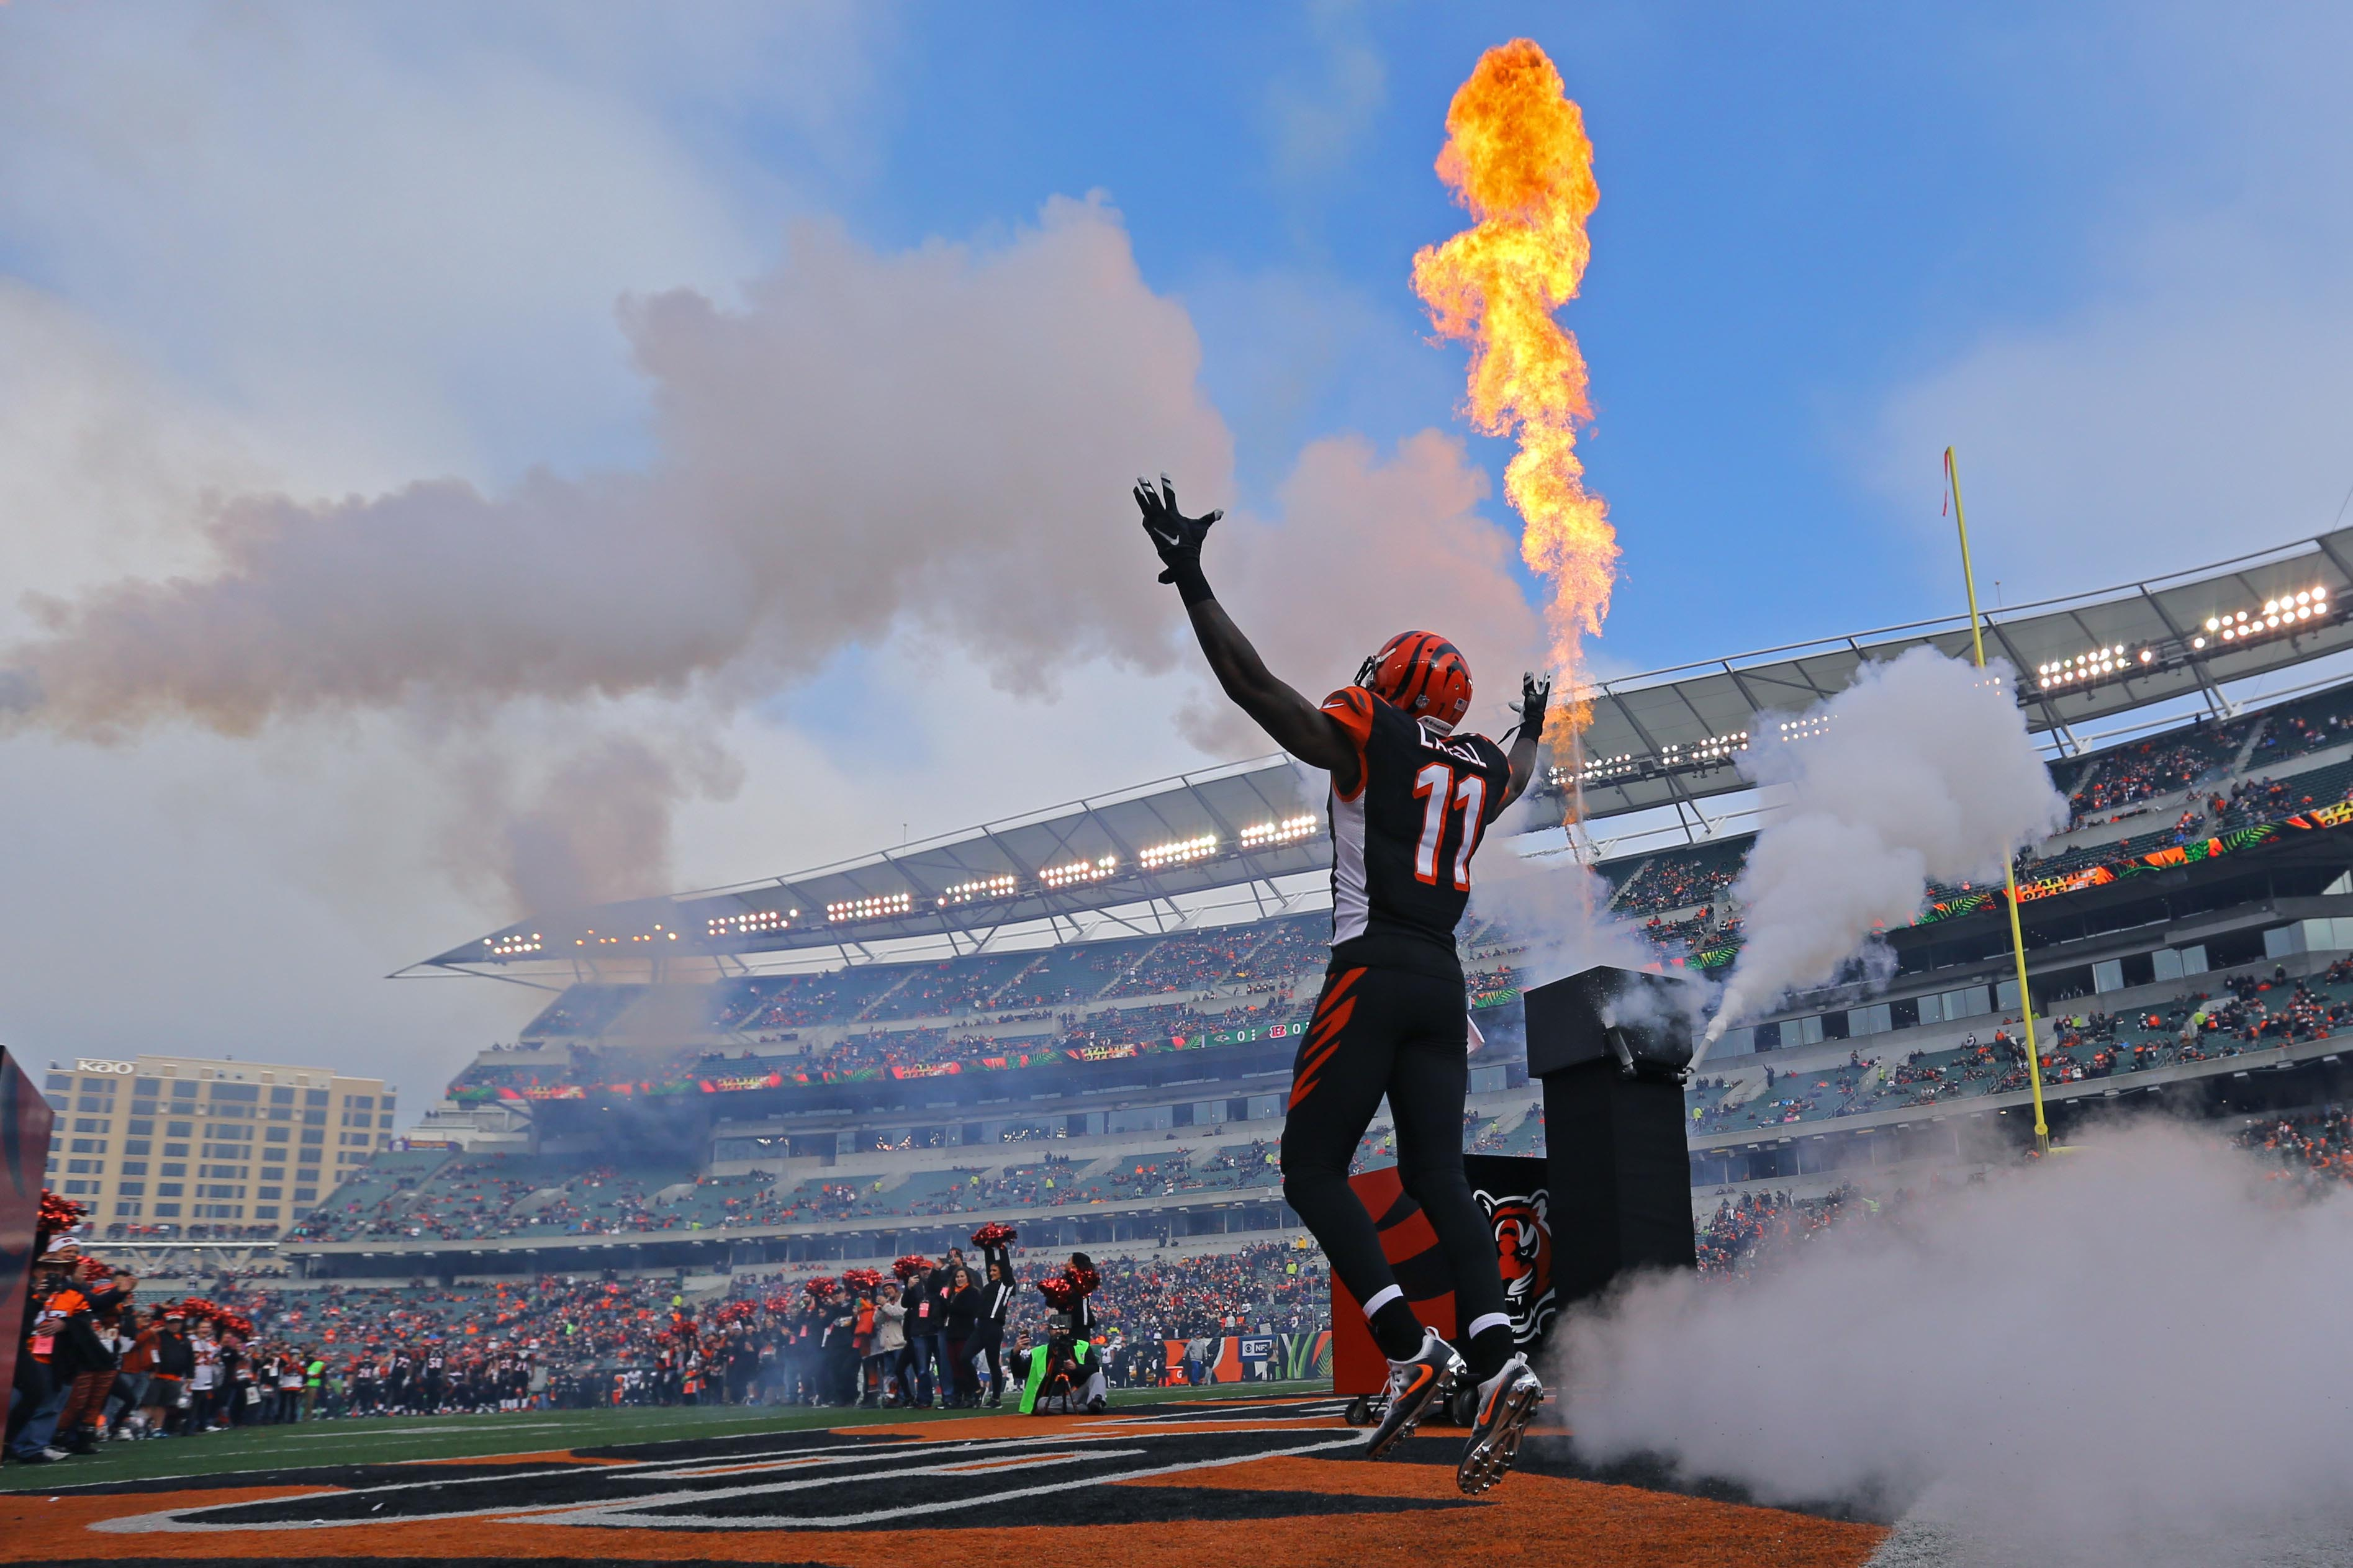 9781151-nfl-baltimore-ravens-at-cincinnati-bengals